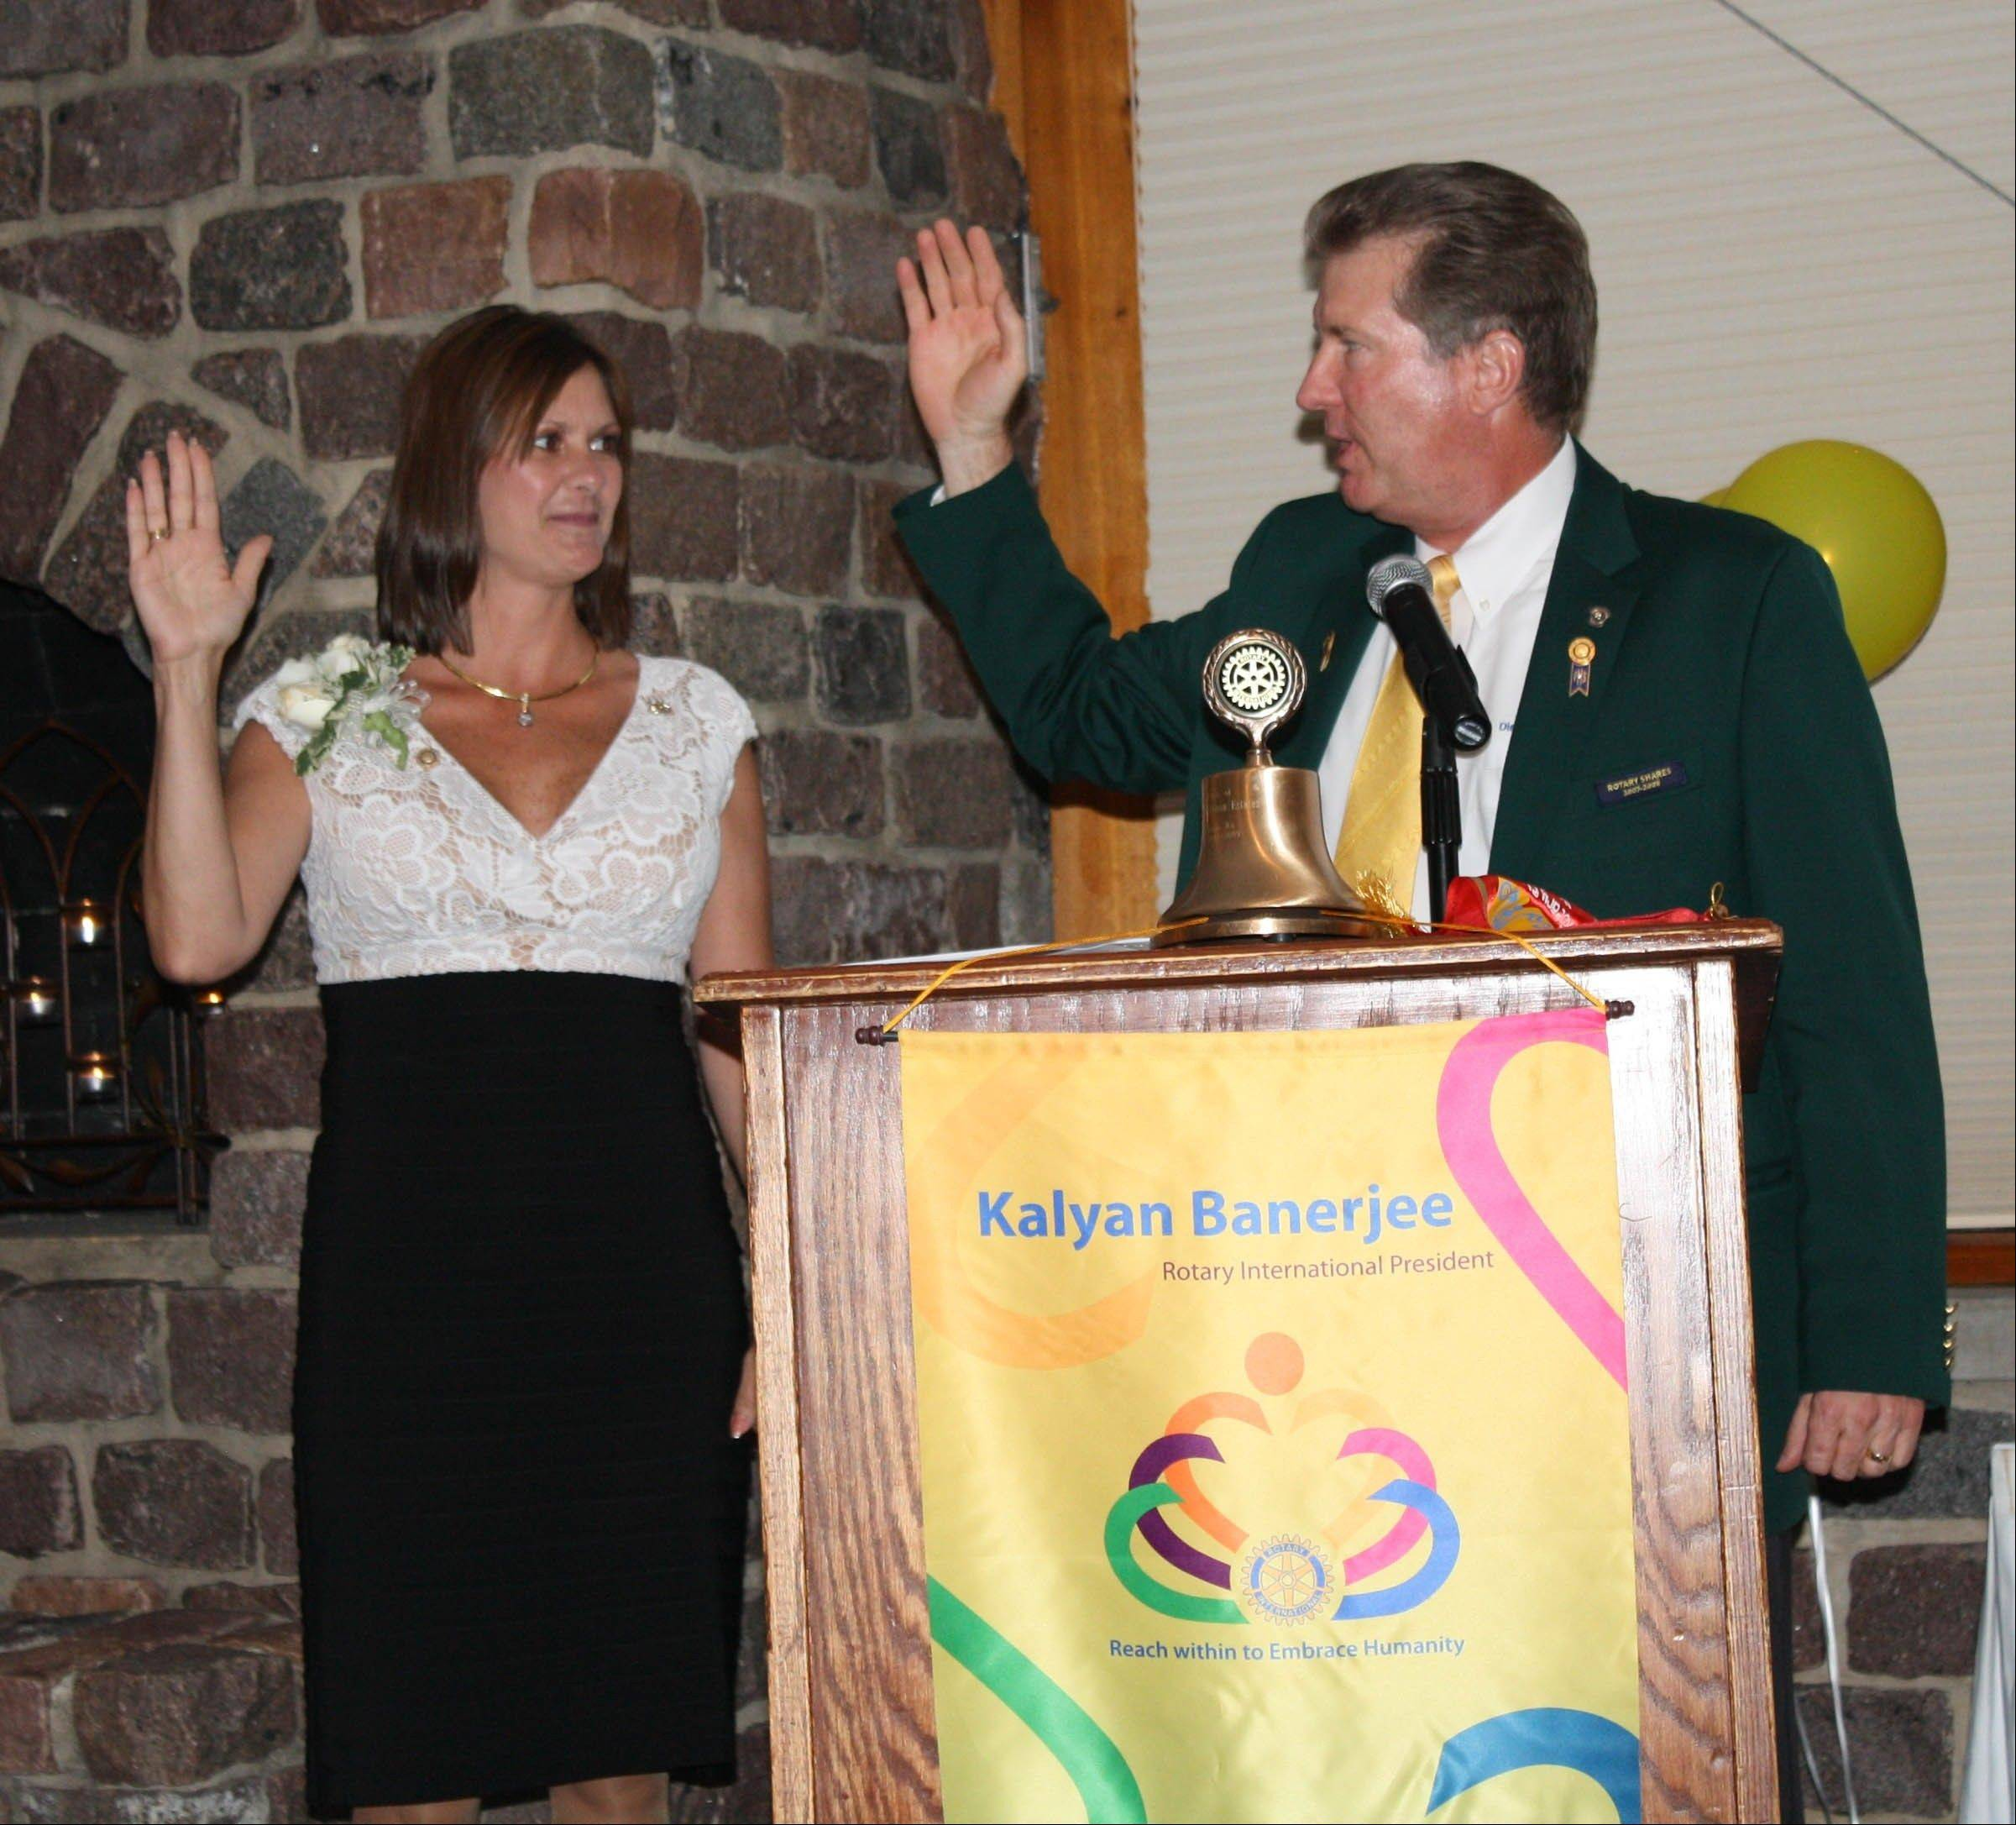 Past District Governor Michael Ericksen installs Julie Clark as president of the Schaumburg Hoffman Estates Rotary Club.